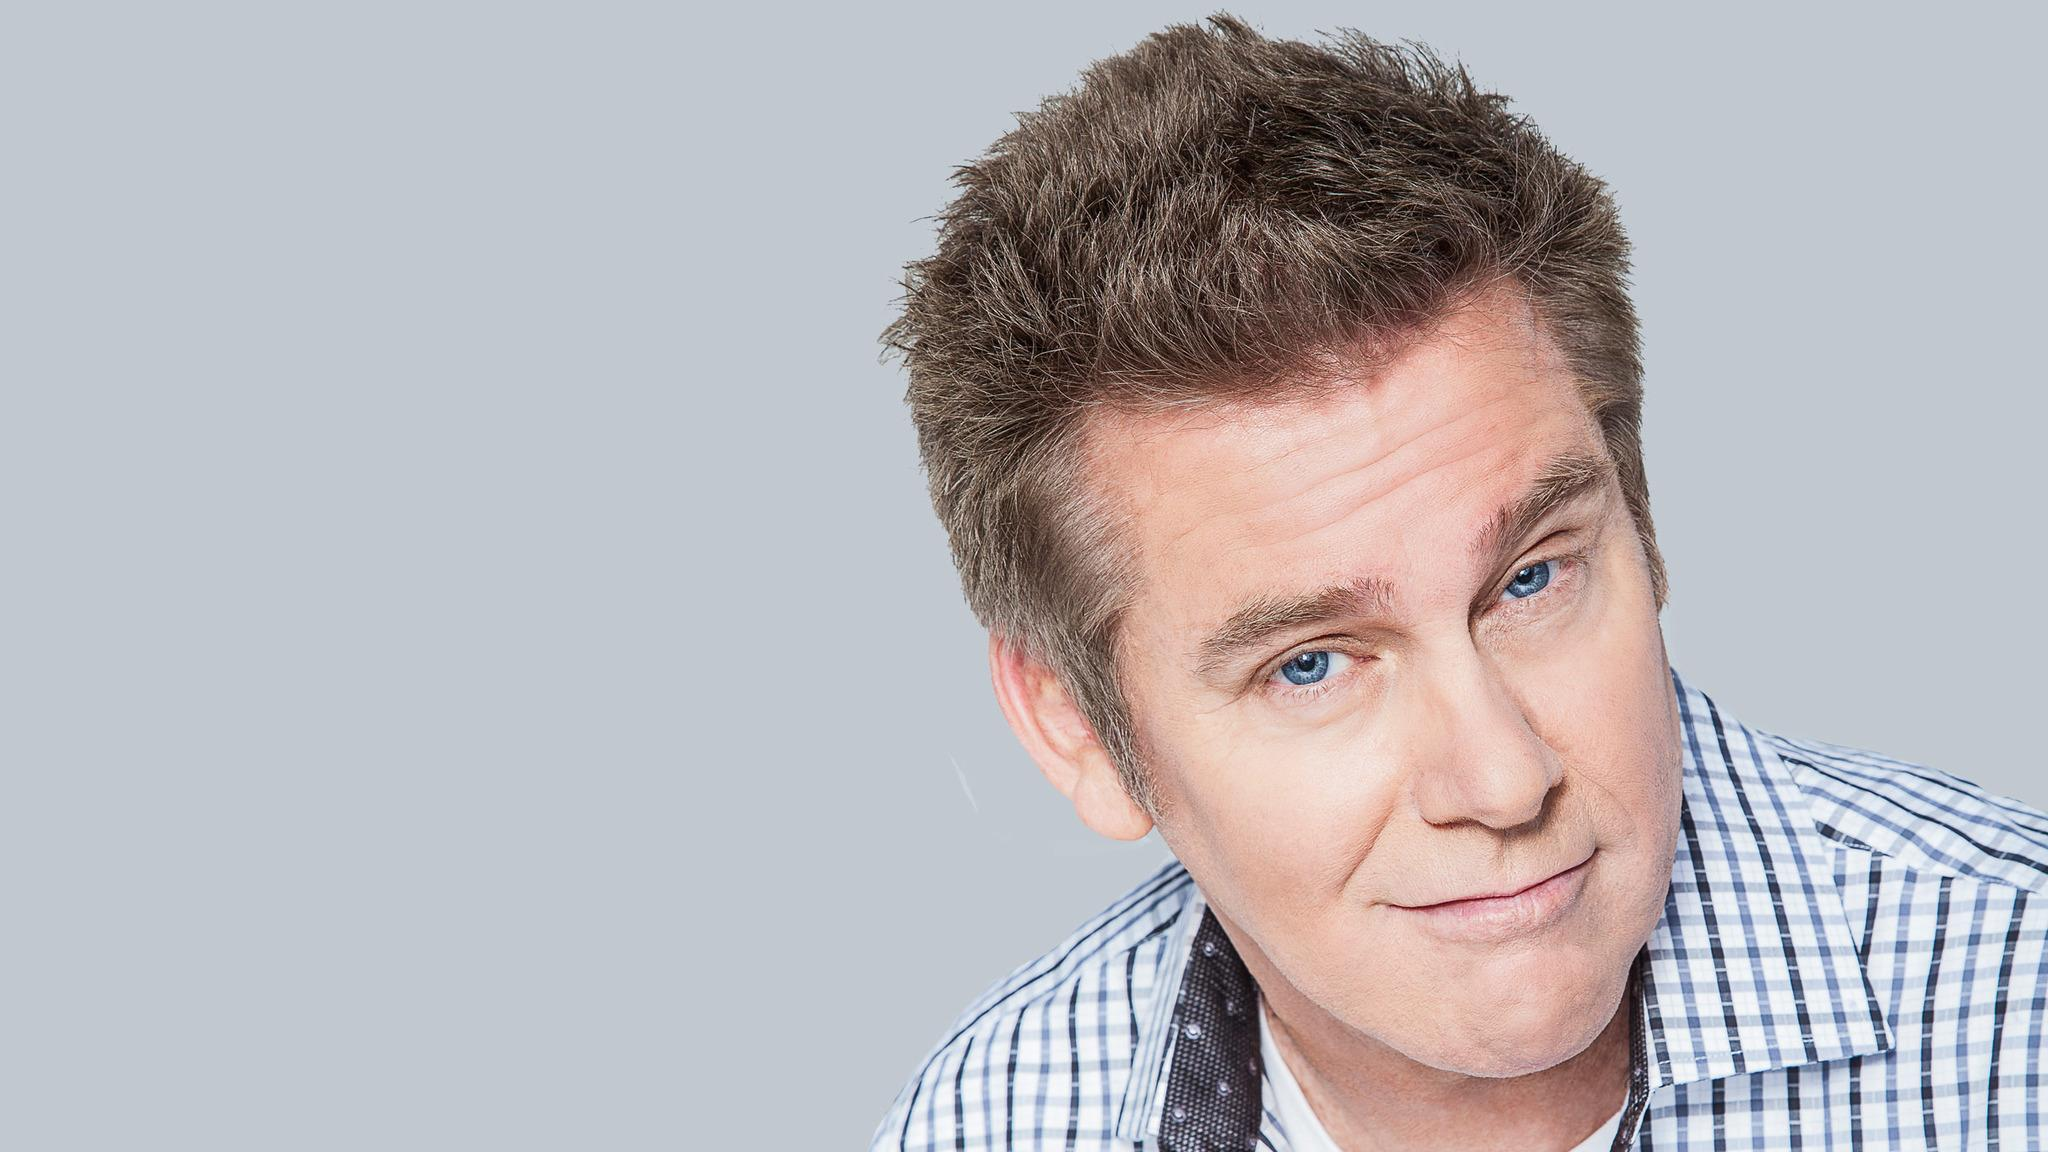 Brian Regan at Palace Theatre Stamford - Stamford, CT 06901